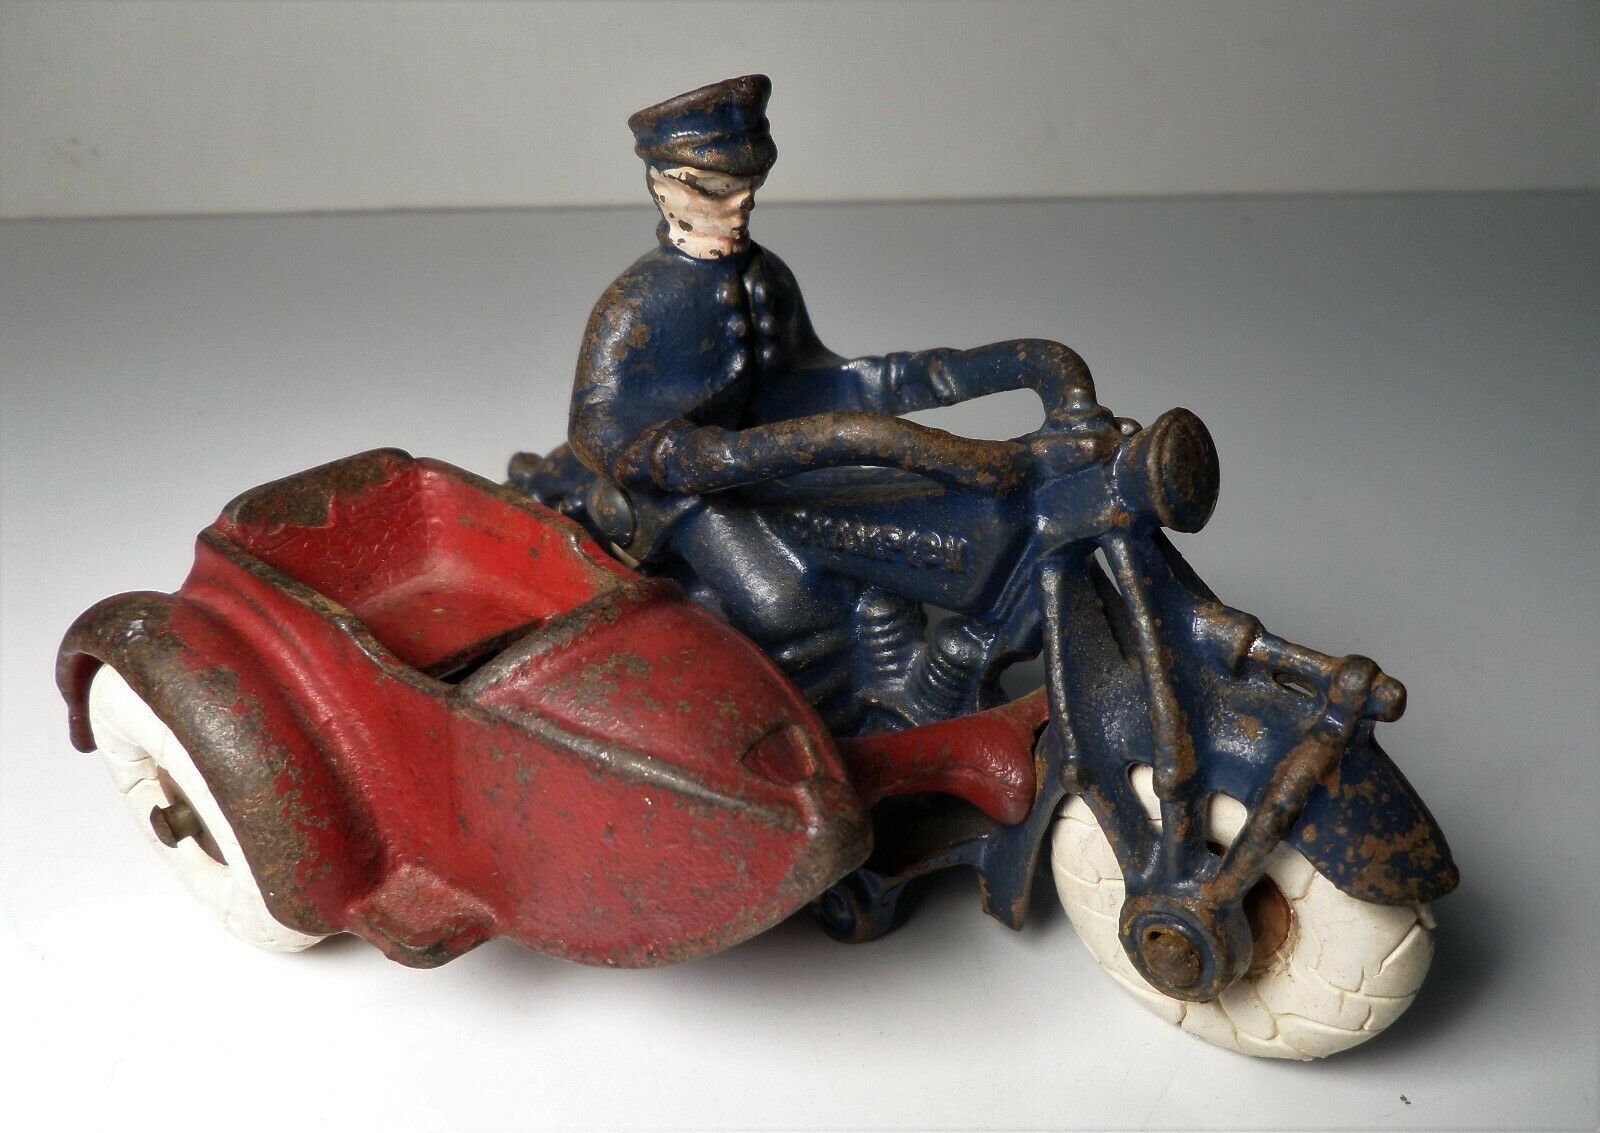 1930's Cast Iron Antique Antique Antique Champion Police Cop Motorcycle w  Sidecar 5  2be7cd